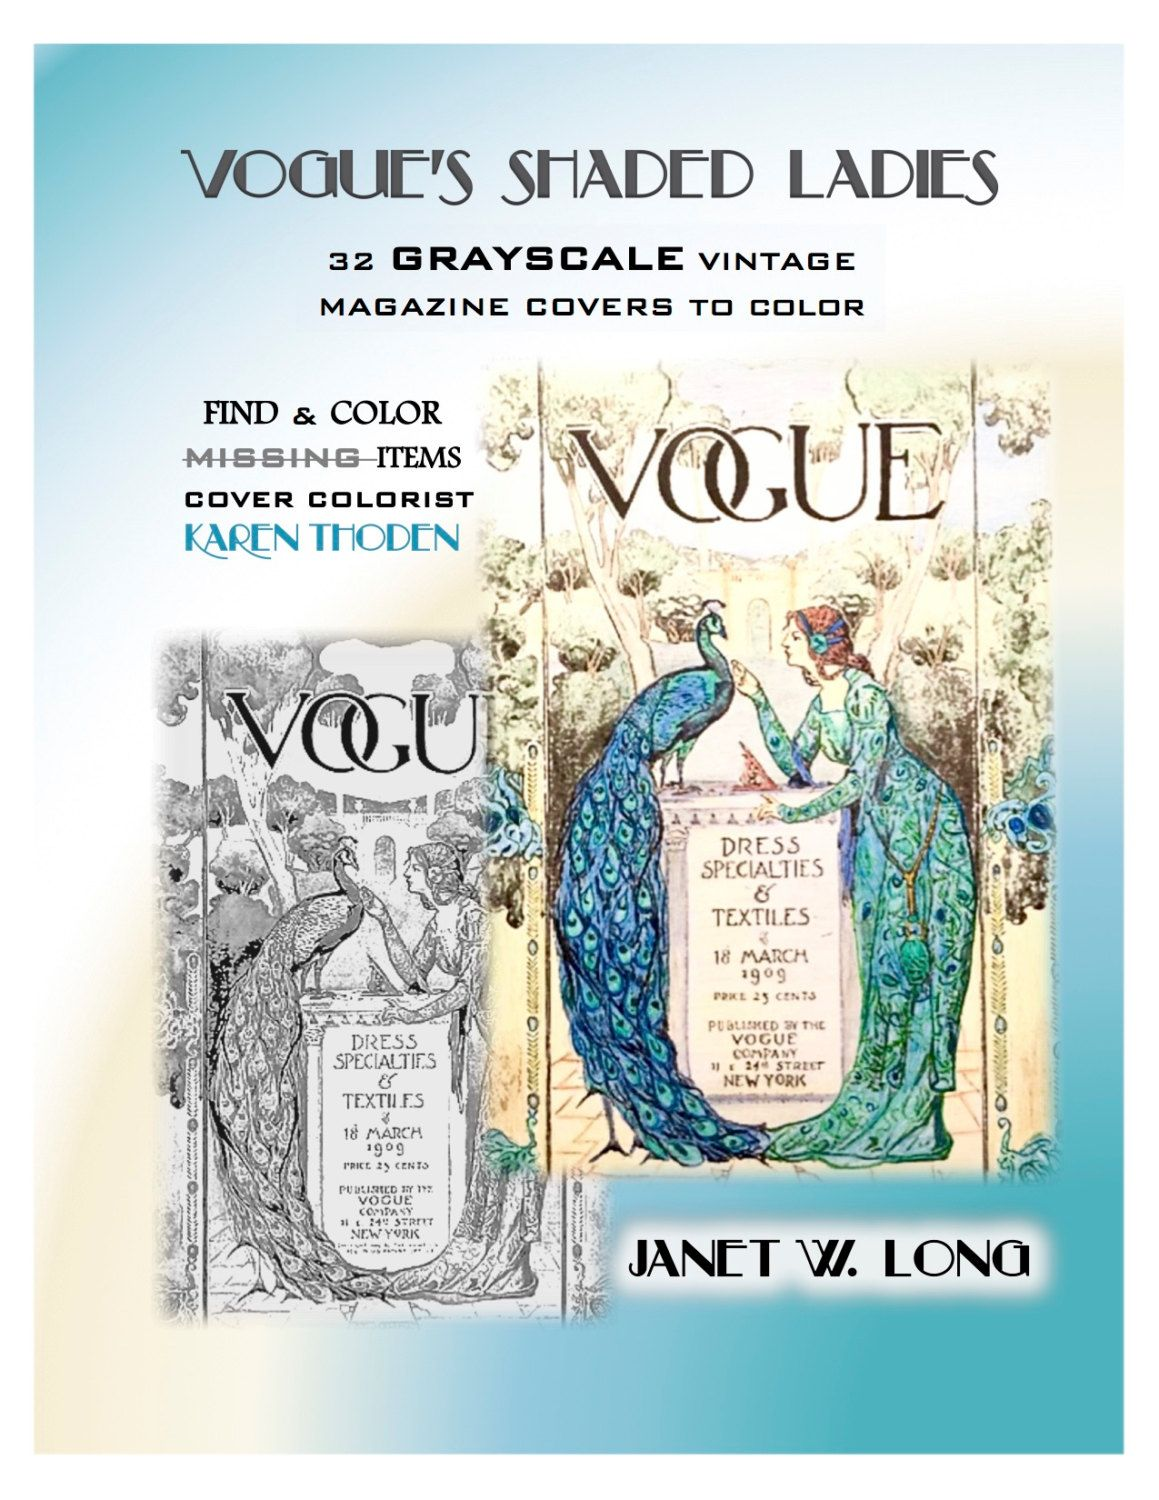 DIGITAL DOWNLOAD Vogue Grayscale Vintage Adult Coloring Book VOGUEs Shaded Ladies Magazine Covers 1893